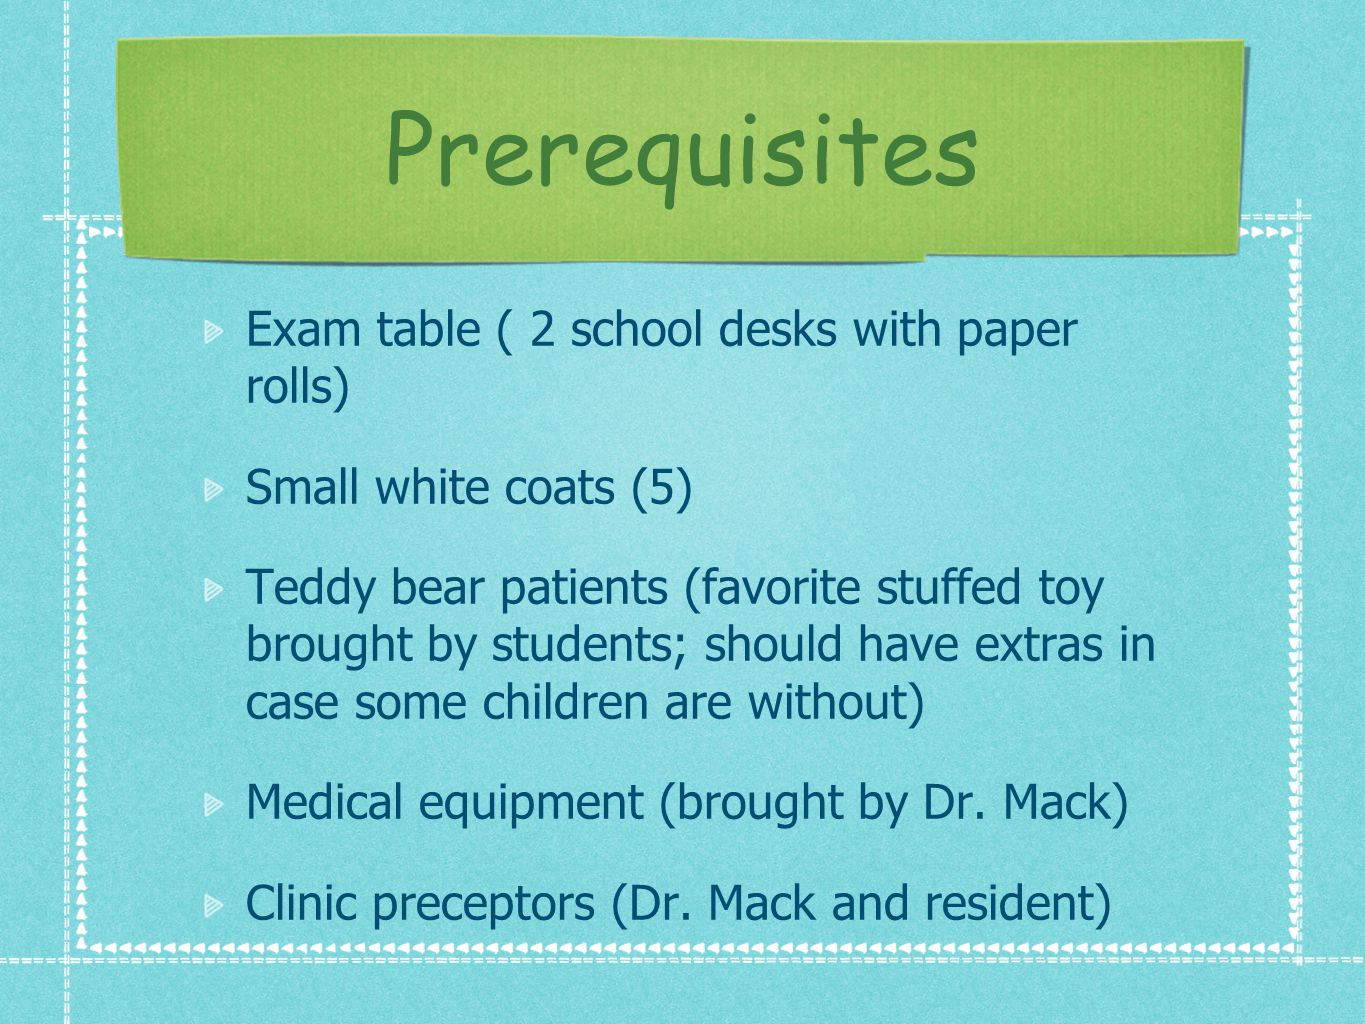 Prerequisites Exam table ( 2 school desks with paper rolls) Small white coats (5) Teddy bear patients (favorite stuffed toy brought by students; should have extras in case some children are without) Medical equipment (brought by Dr.